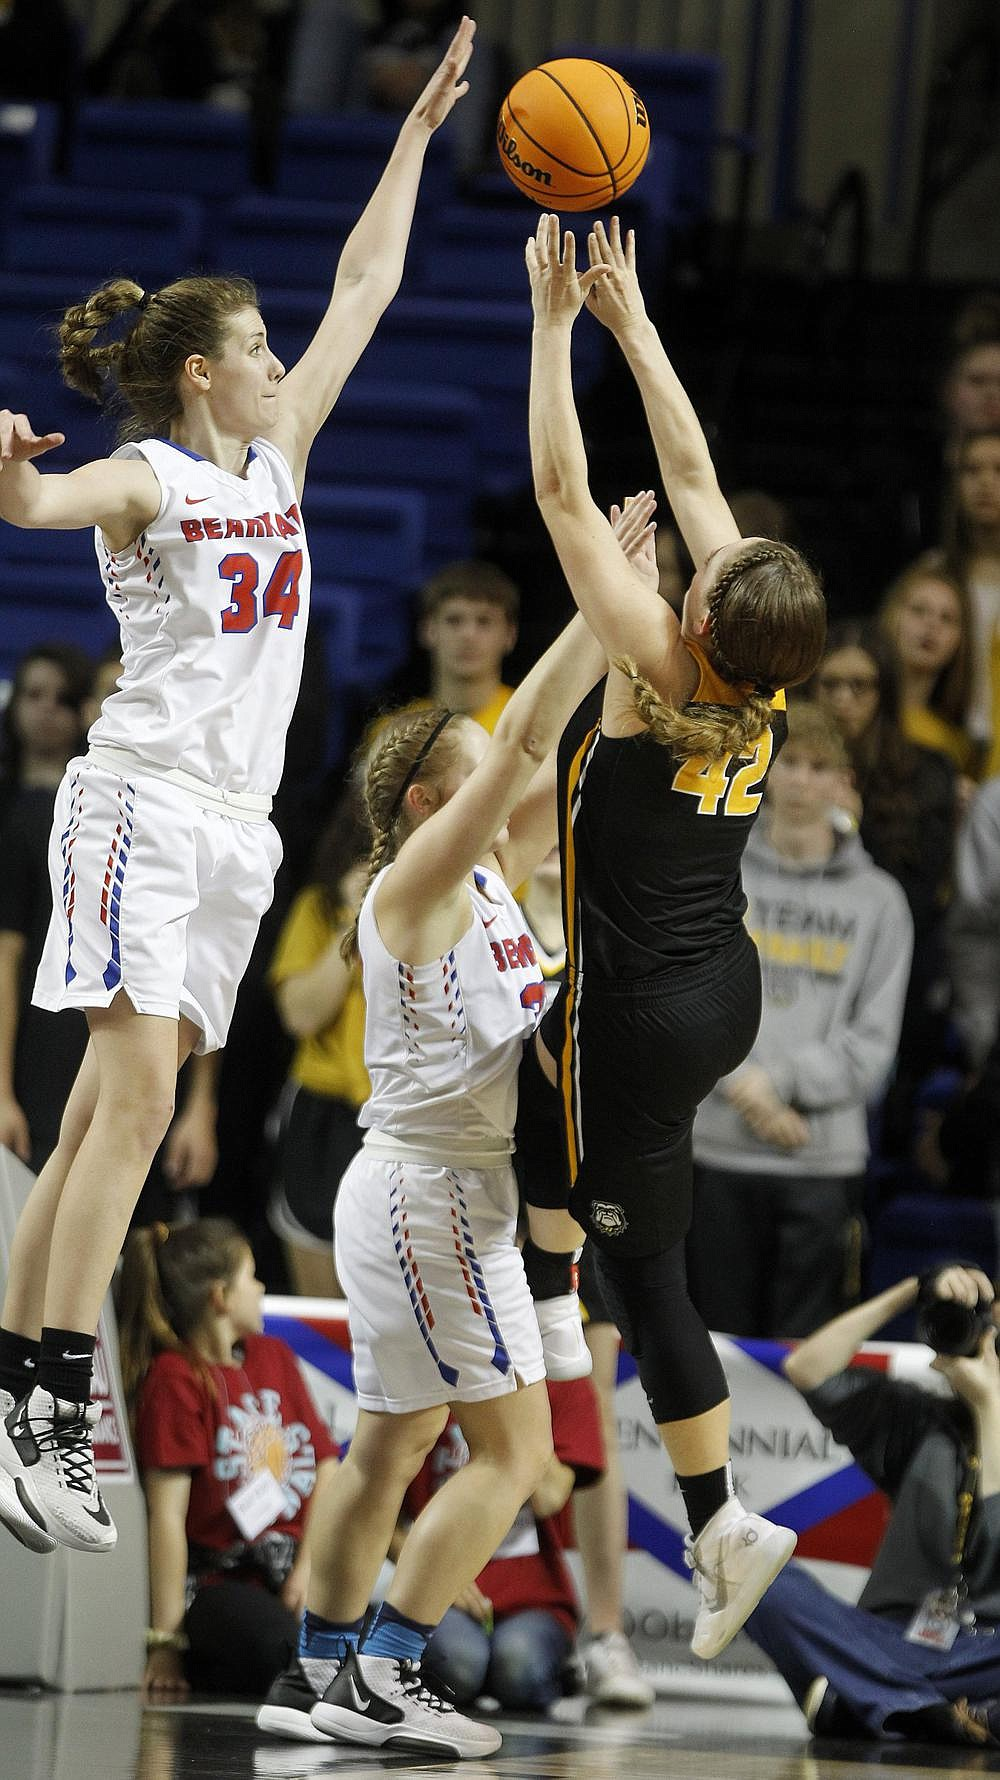 Melbourne's Jenna Lawrence (left) blocks a shot against Quitman in last season's Class 2A girls state championship game. The Lady Bearkatz's quest to repeat as champions was delayed after the Arkansas Activities Association announced Friday that regional tournaments, state tournaments and state finals are being pushed back a week because of inclement weather in the state.